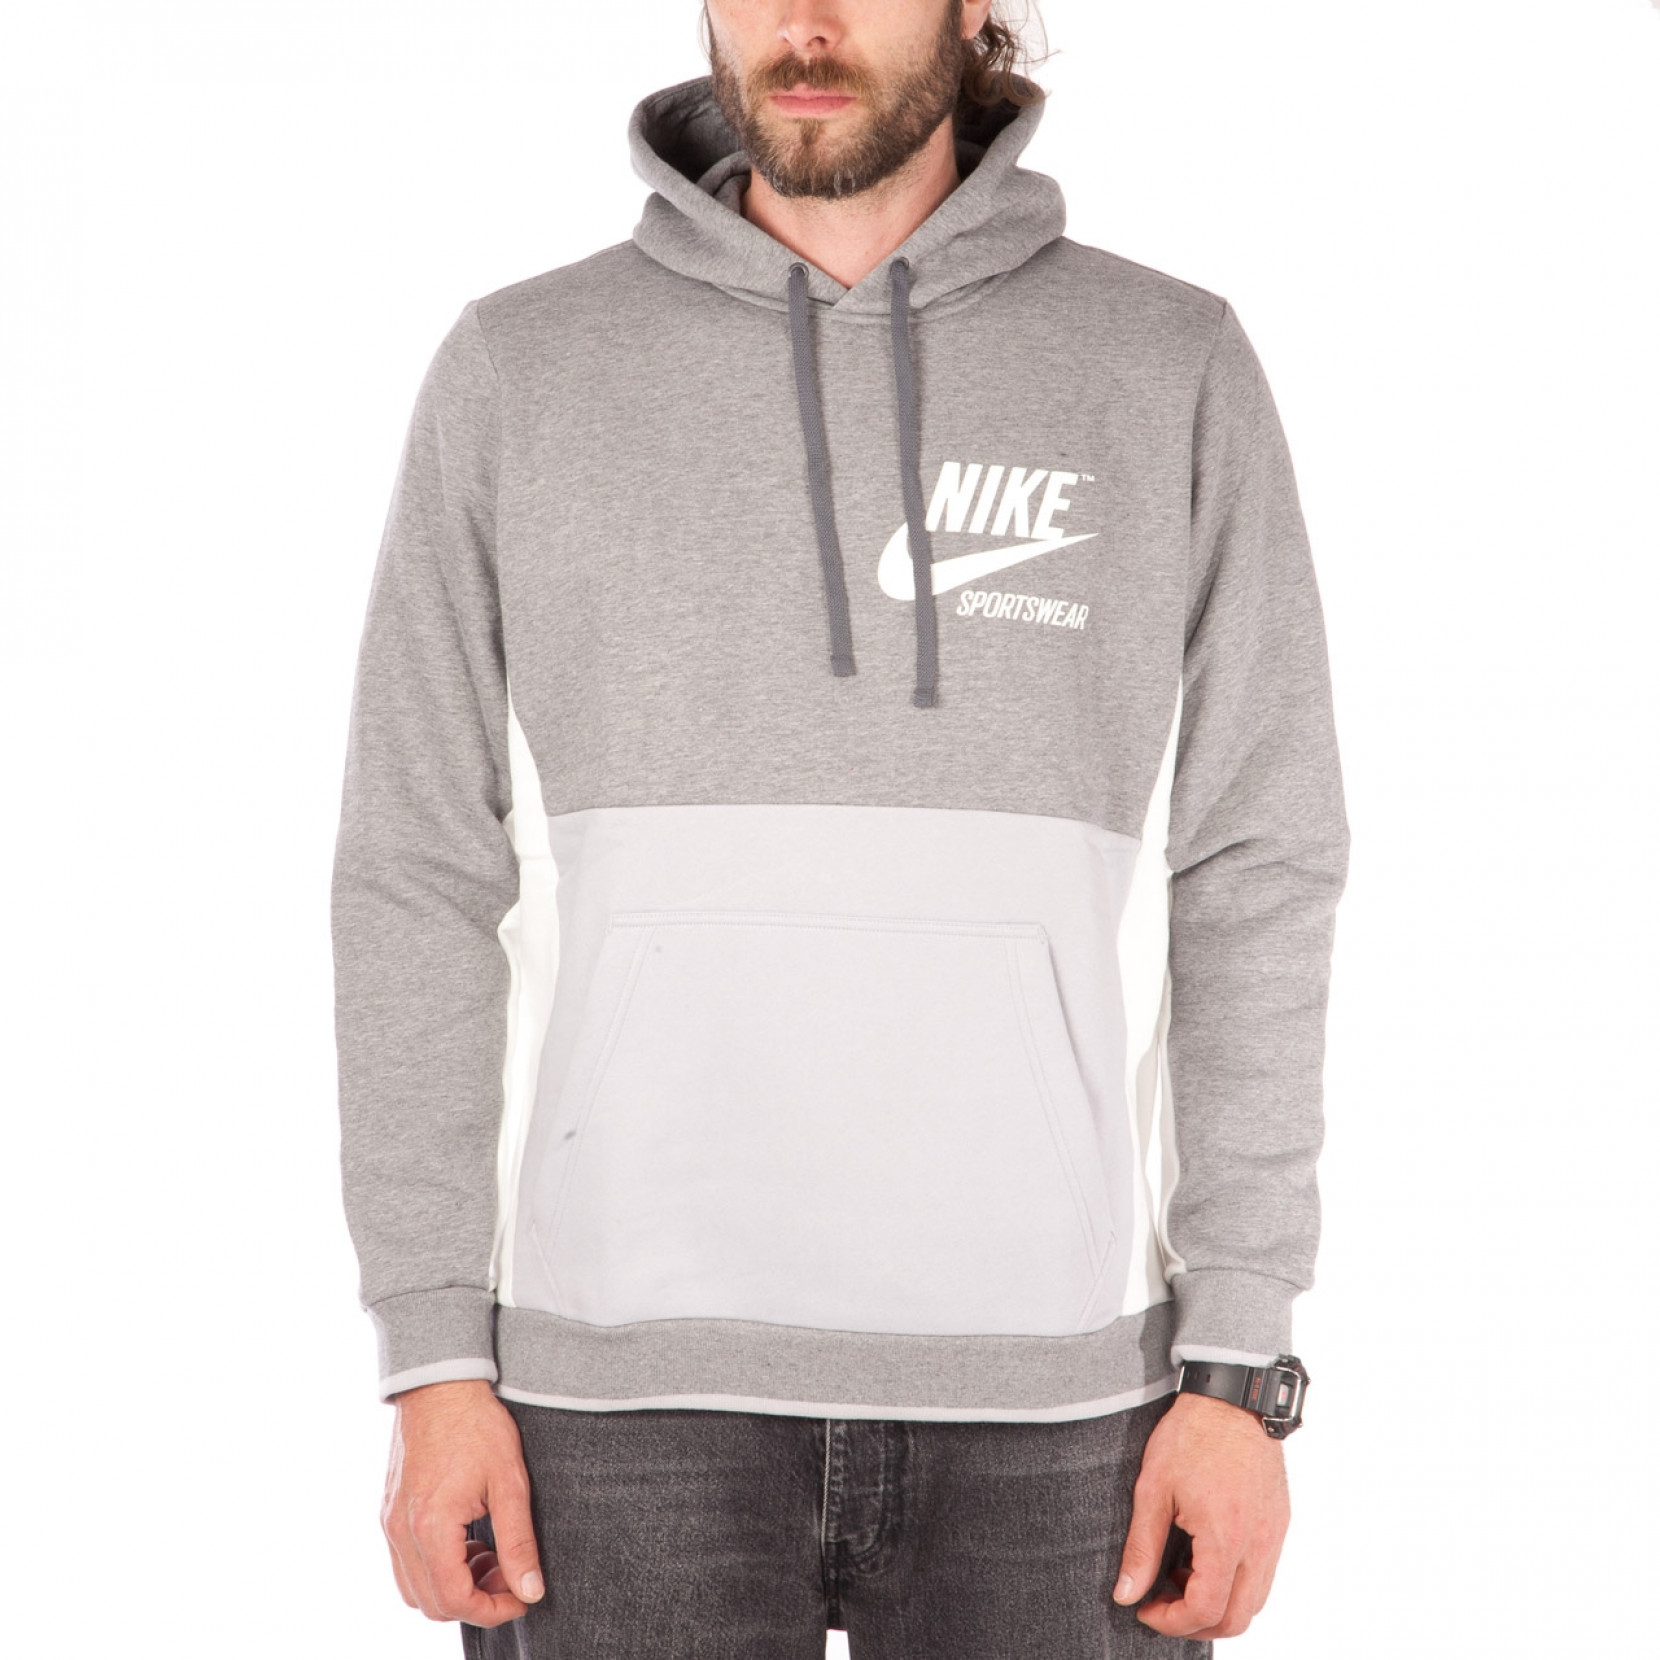 Nike Hoodie Carbon Heather Nike Sportswear Archive Hoodie Carbon Heather Sail